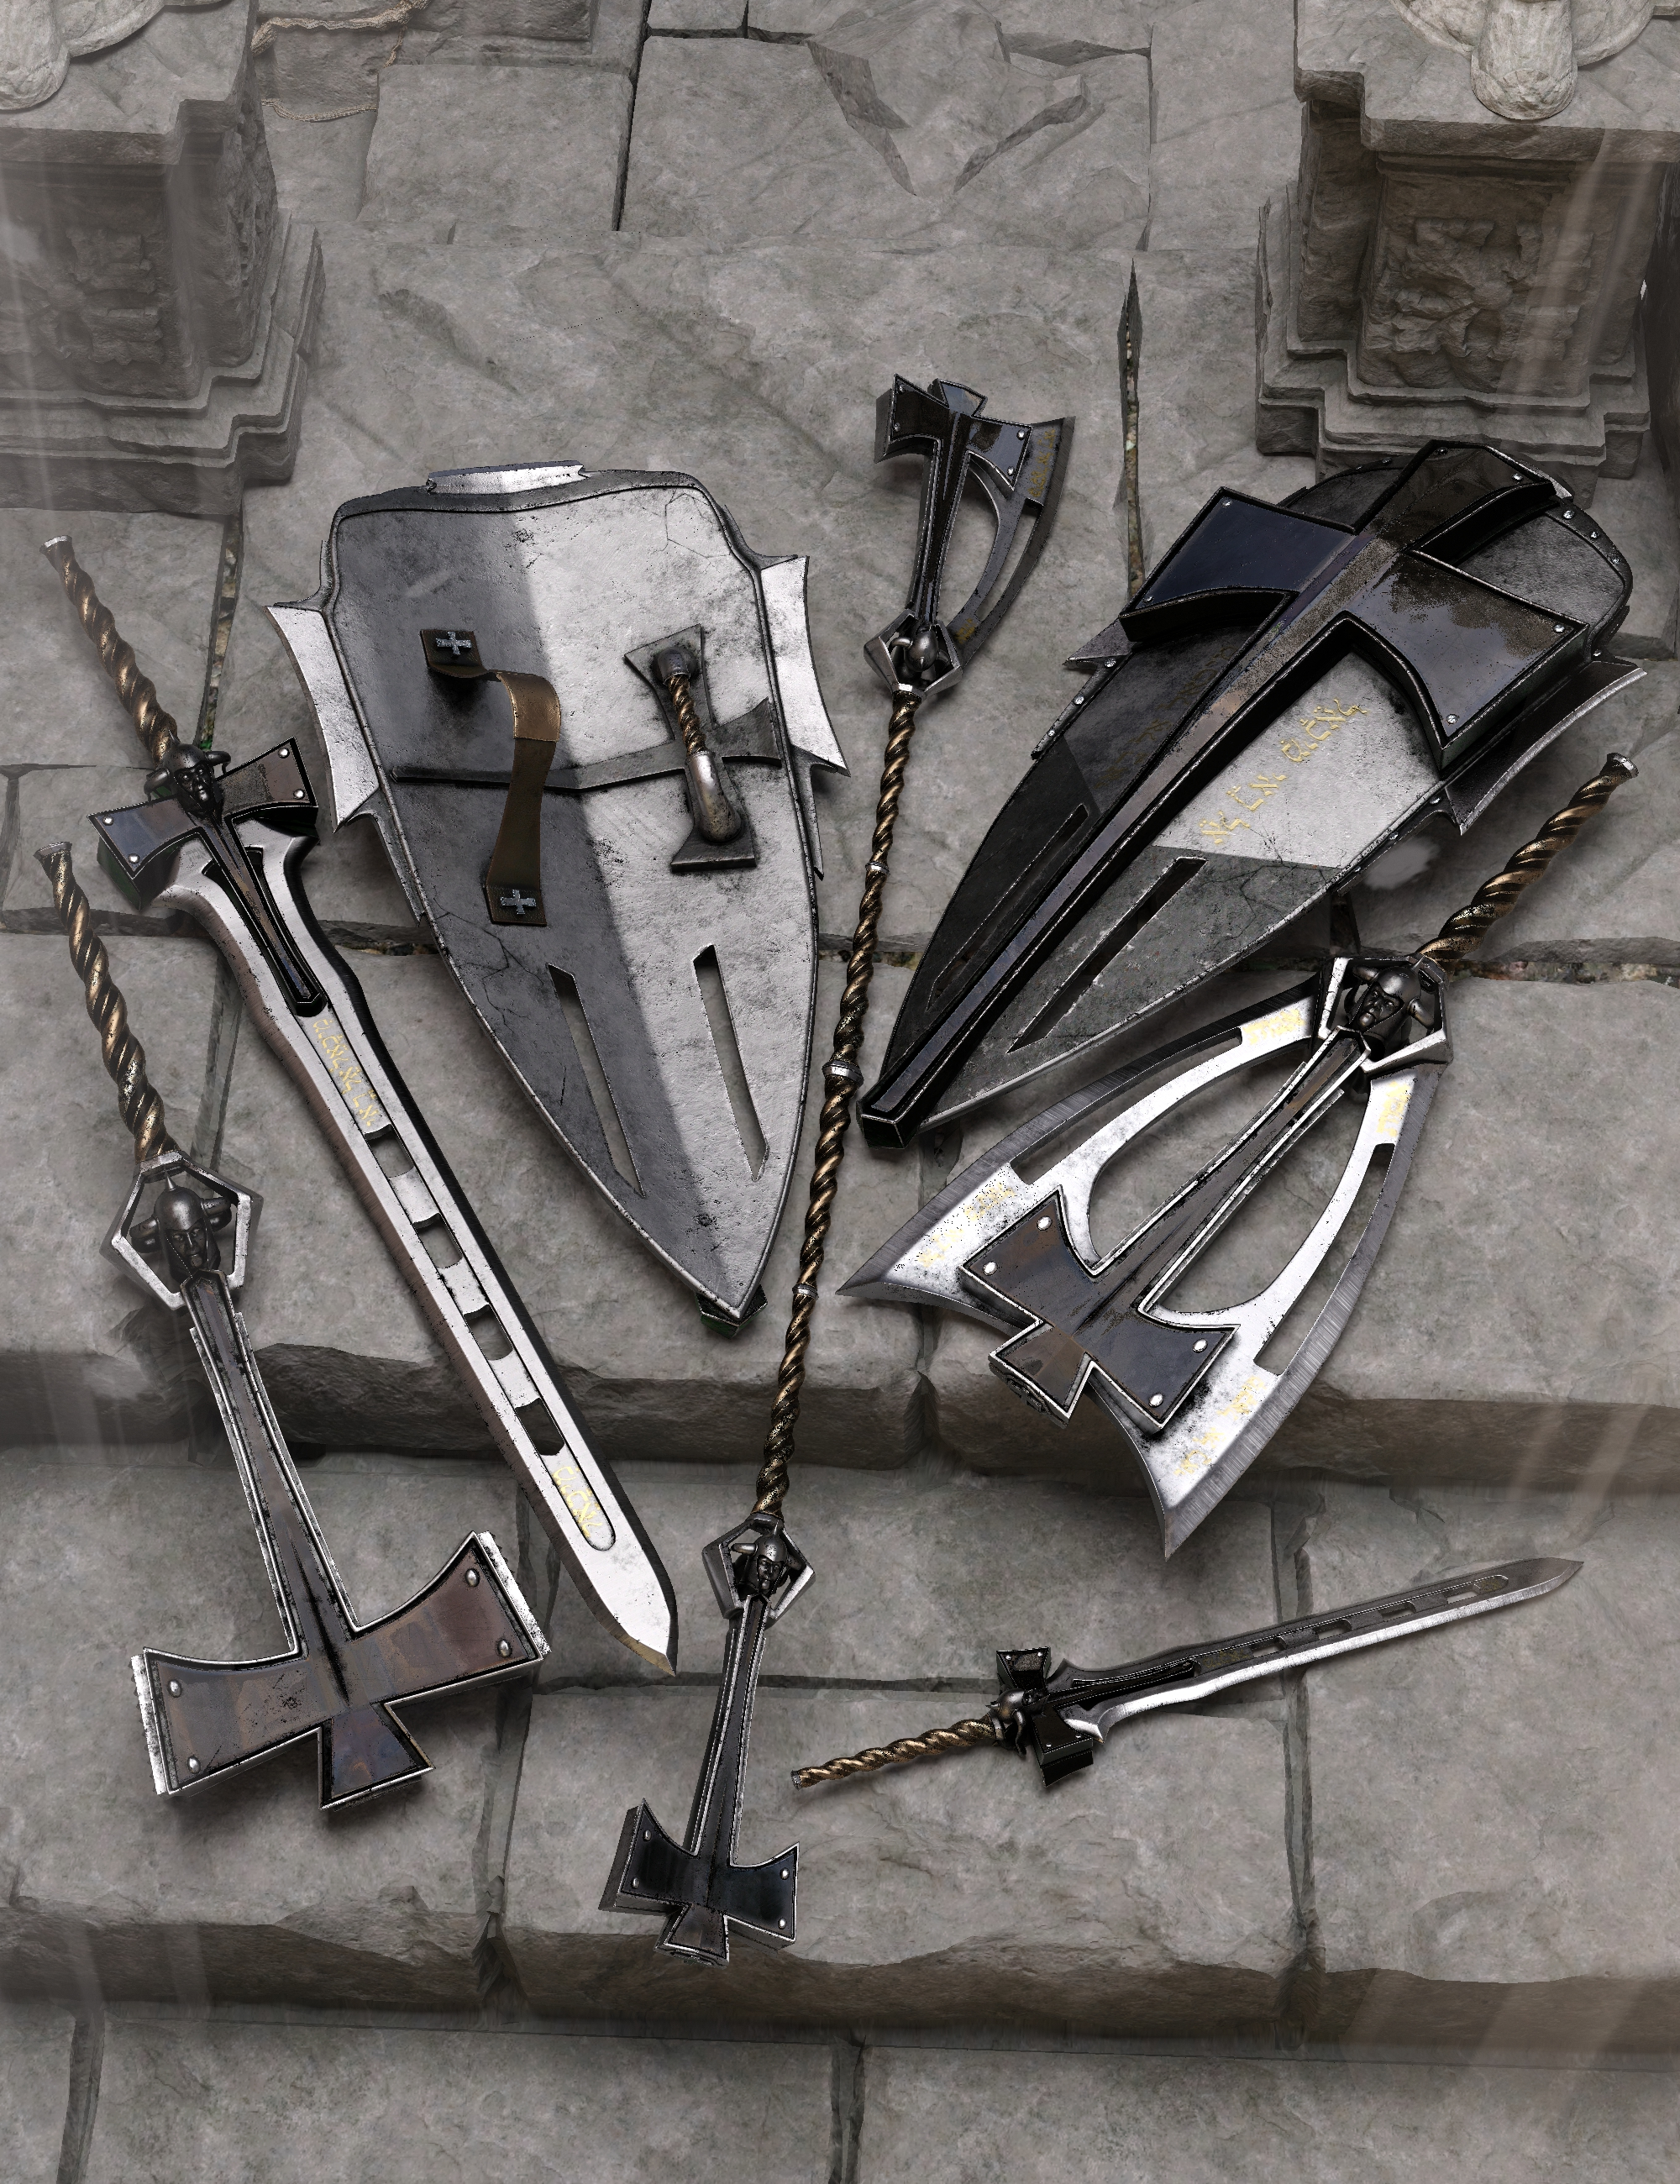 Bellum Animis 2 Weapons Collection by: Britech, 3D Models by Daz 3D